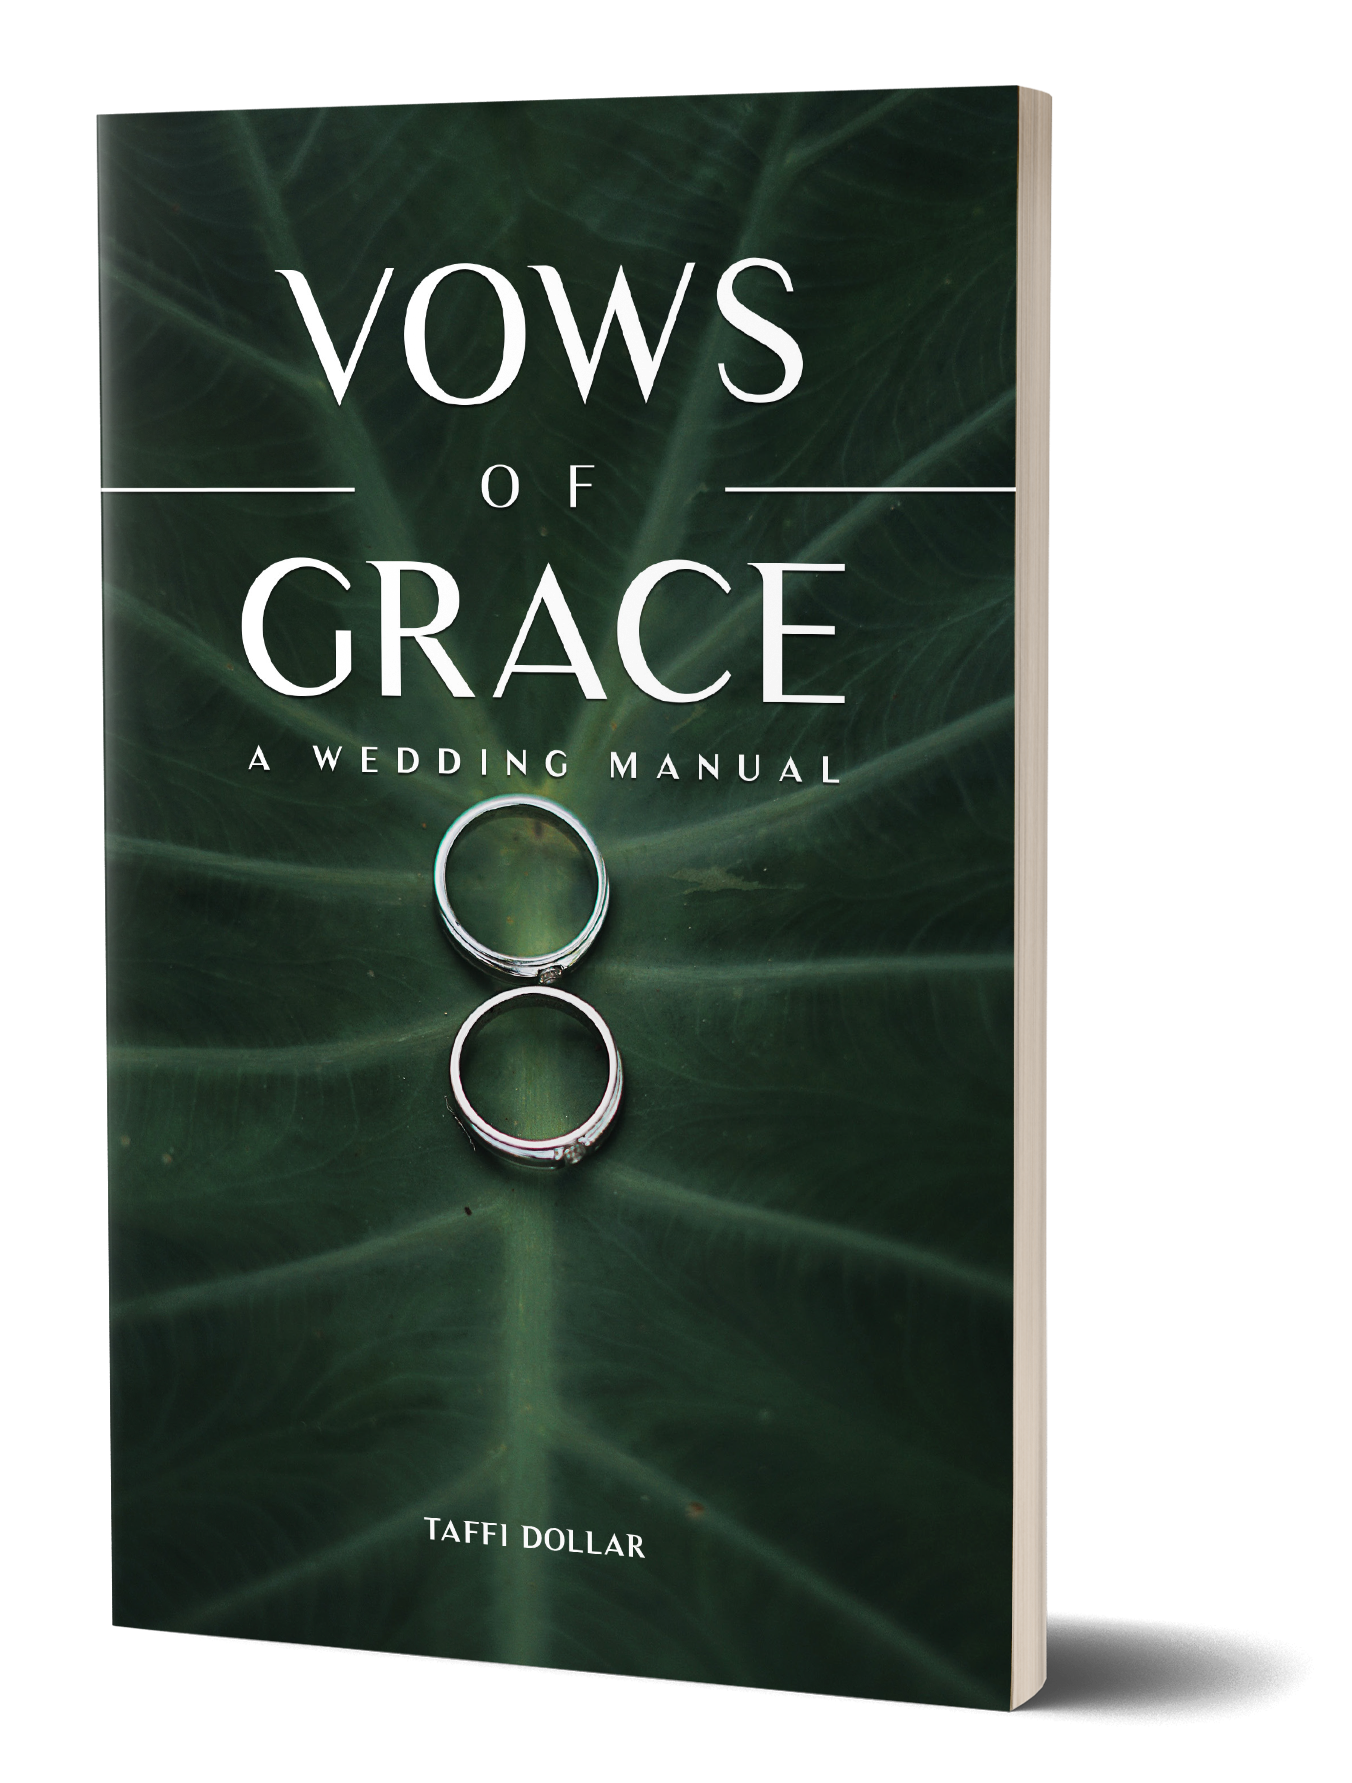 Grace of Mutual Submission Companion Guide: Vows of Grace - A Wedding Manual